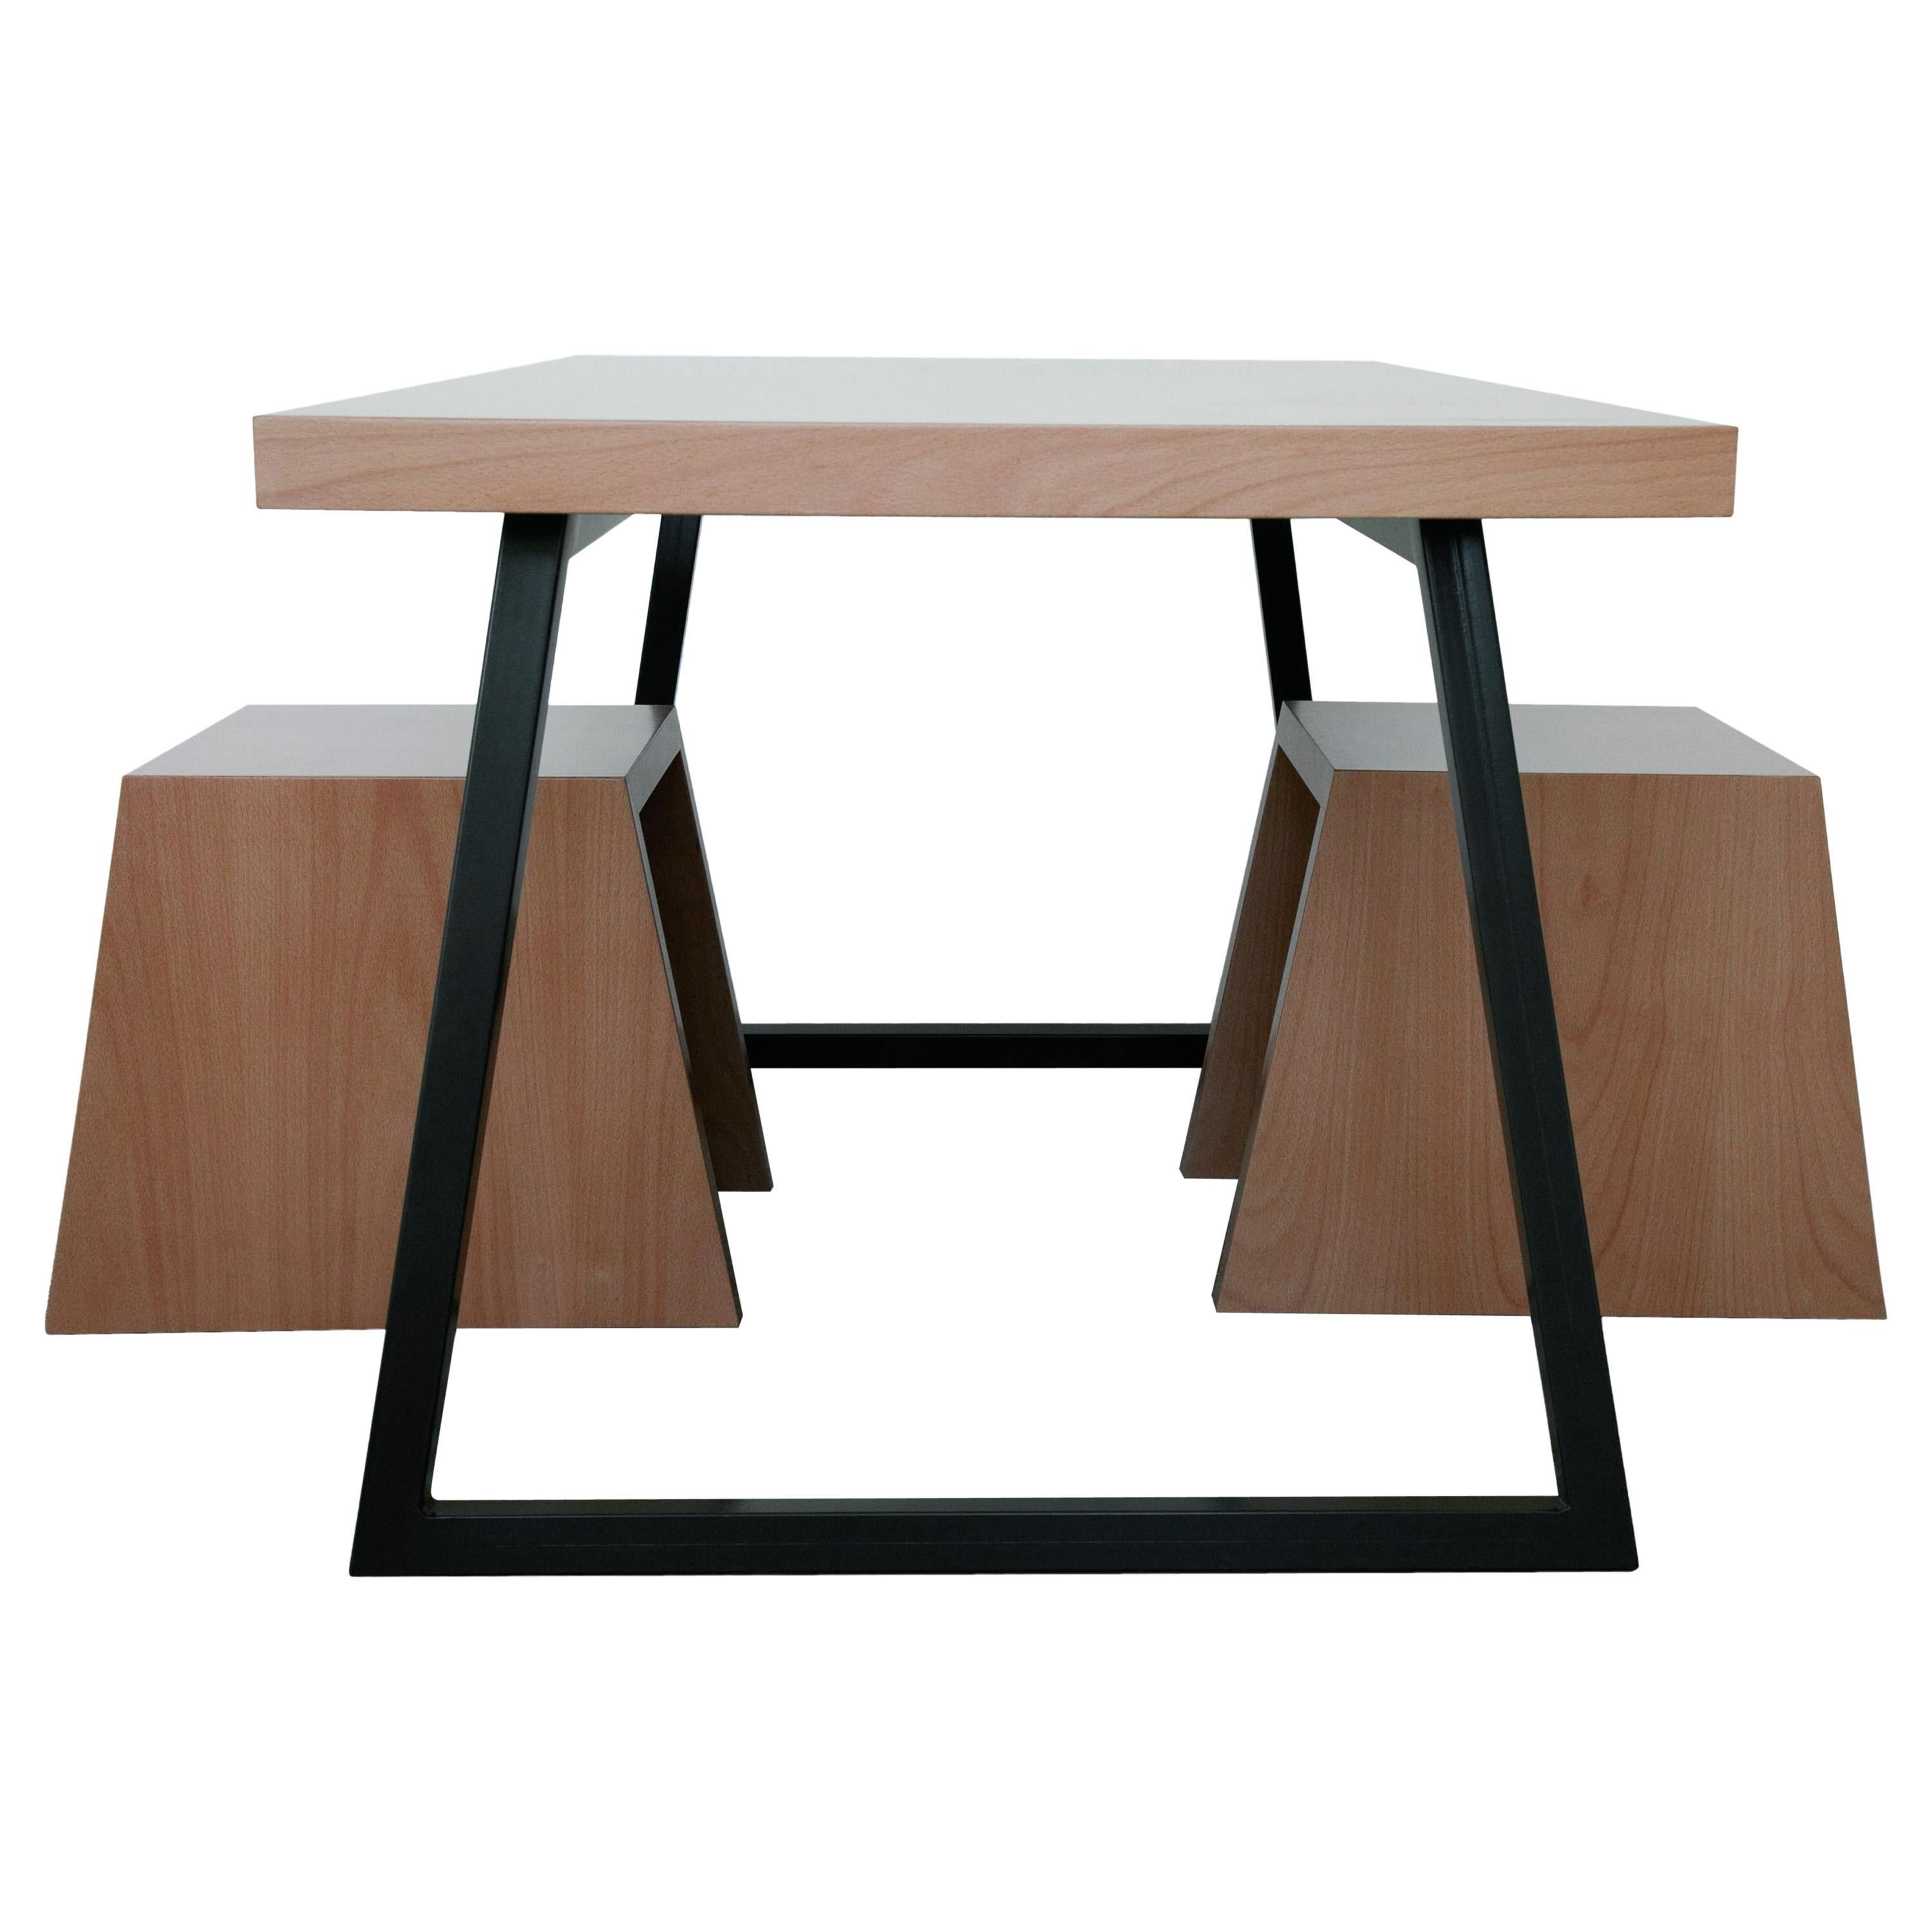 21st Century, Minimalist, European, Beechwood Table with Metal Base and a Stool